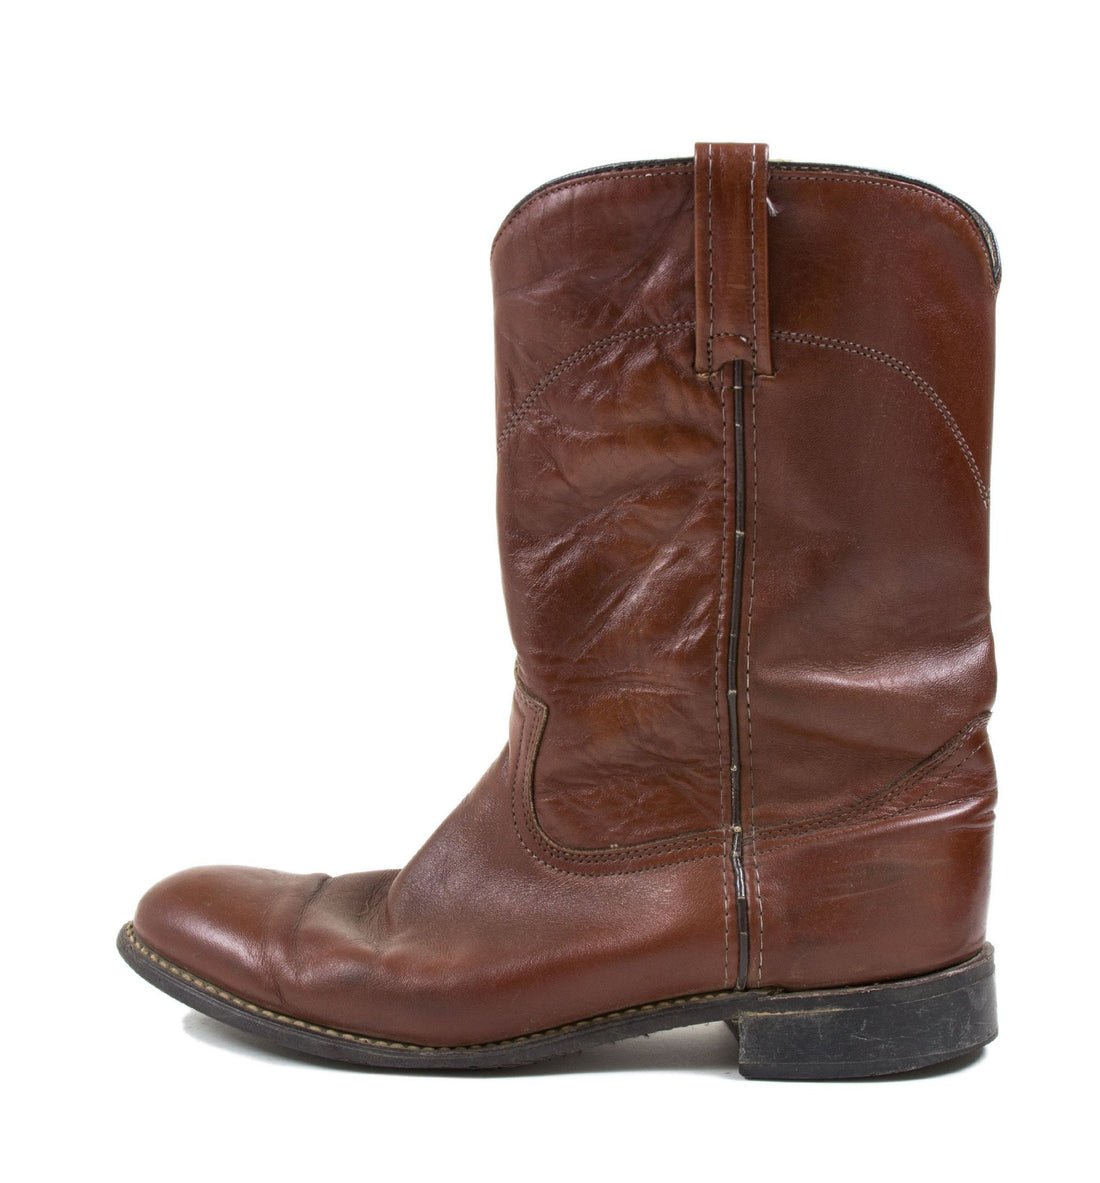 Vintage Brown Leather Boots- 9 - Vintage - Iron and Resin